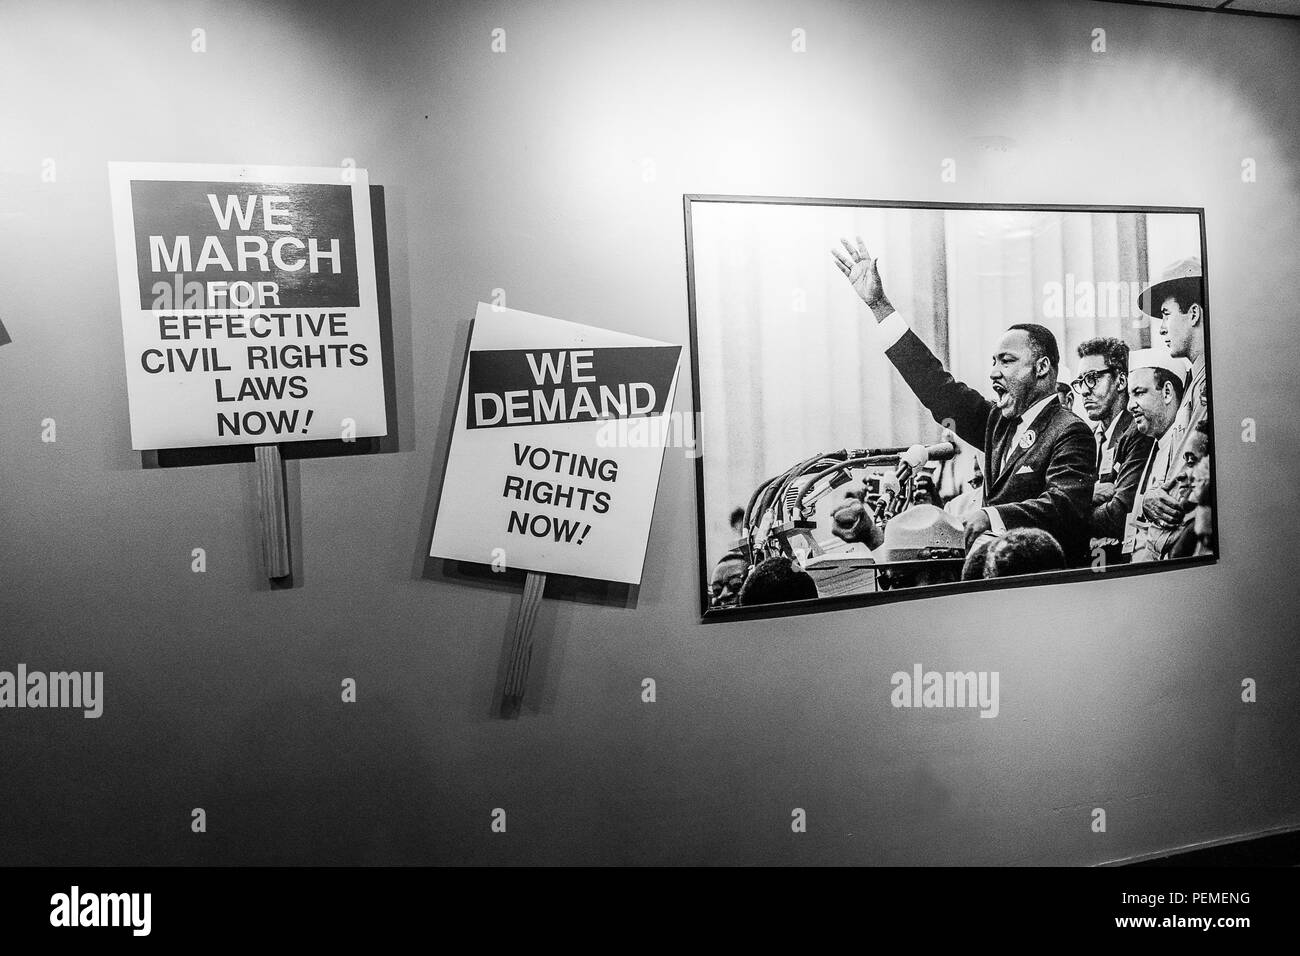 Martin Luther King, Jr. National Historic Site - Stock Image